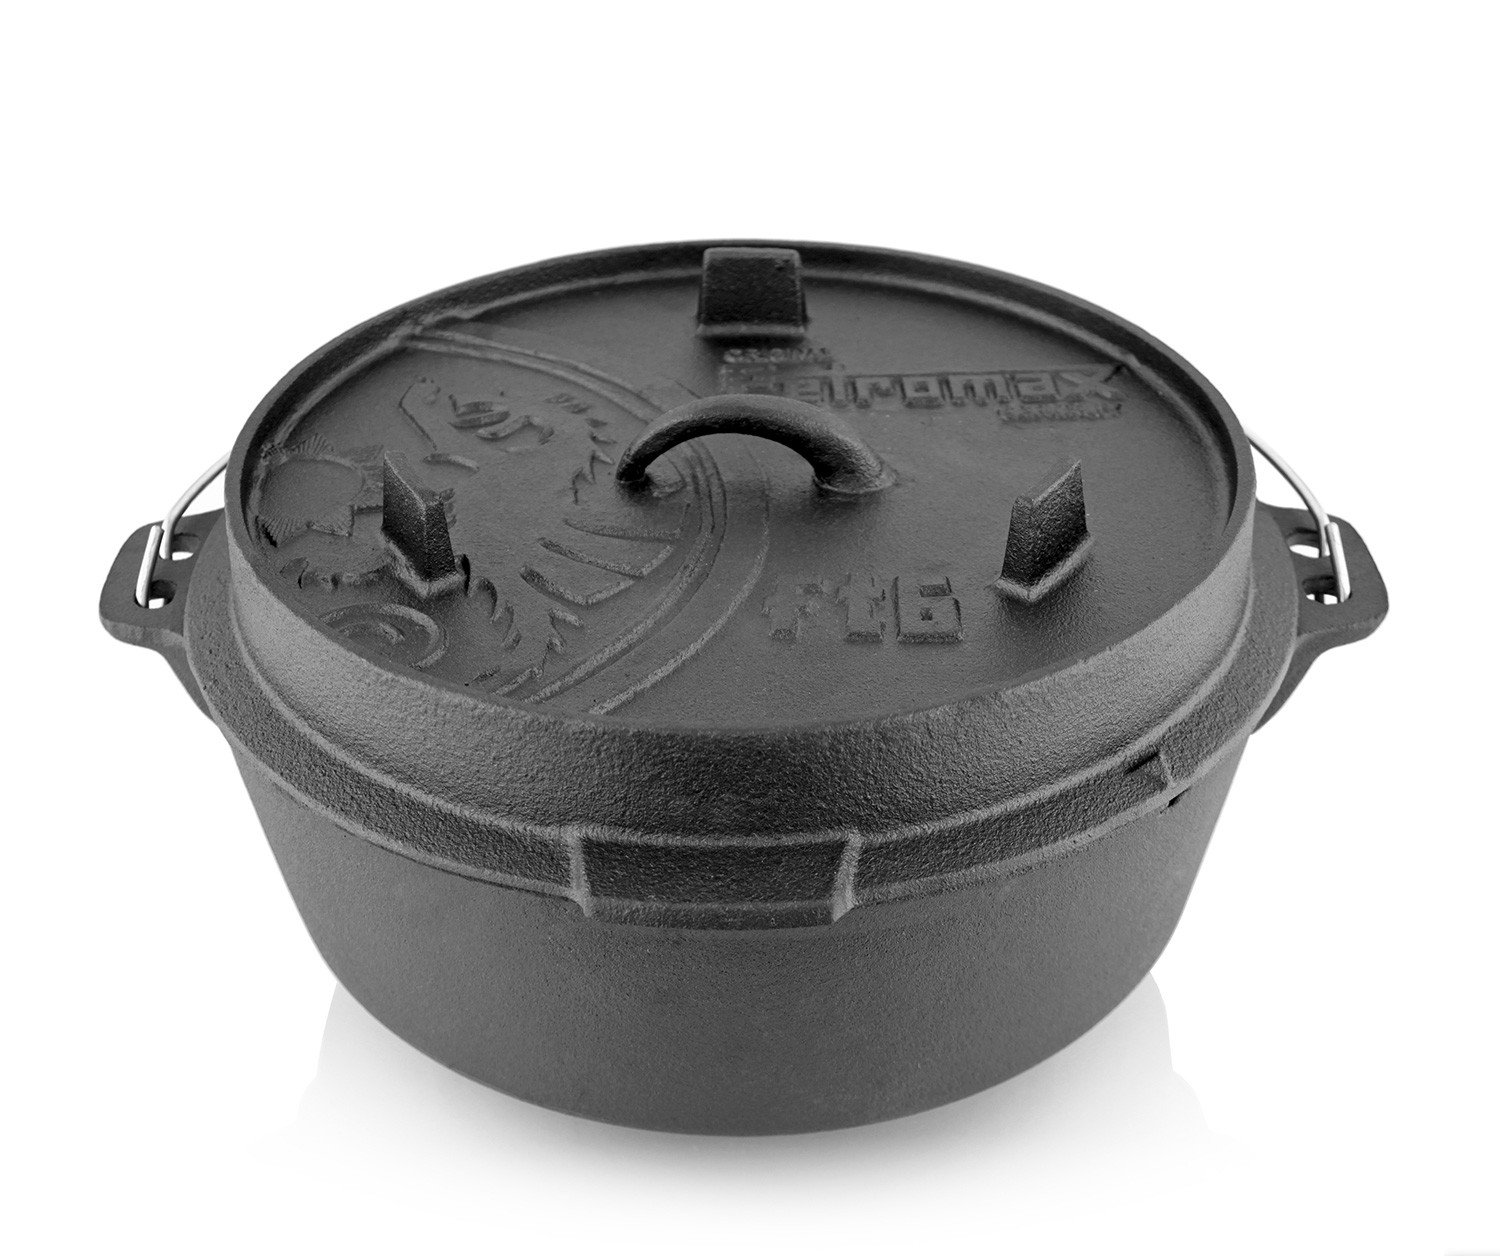 Petromax Cast Iron Dutch Oven with Flat Base - 5.8 Qt